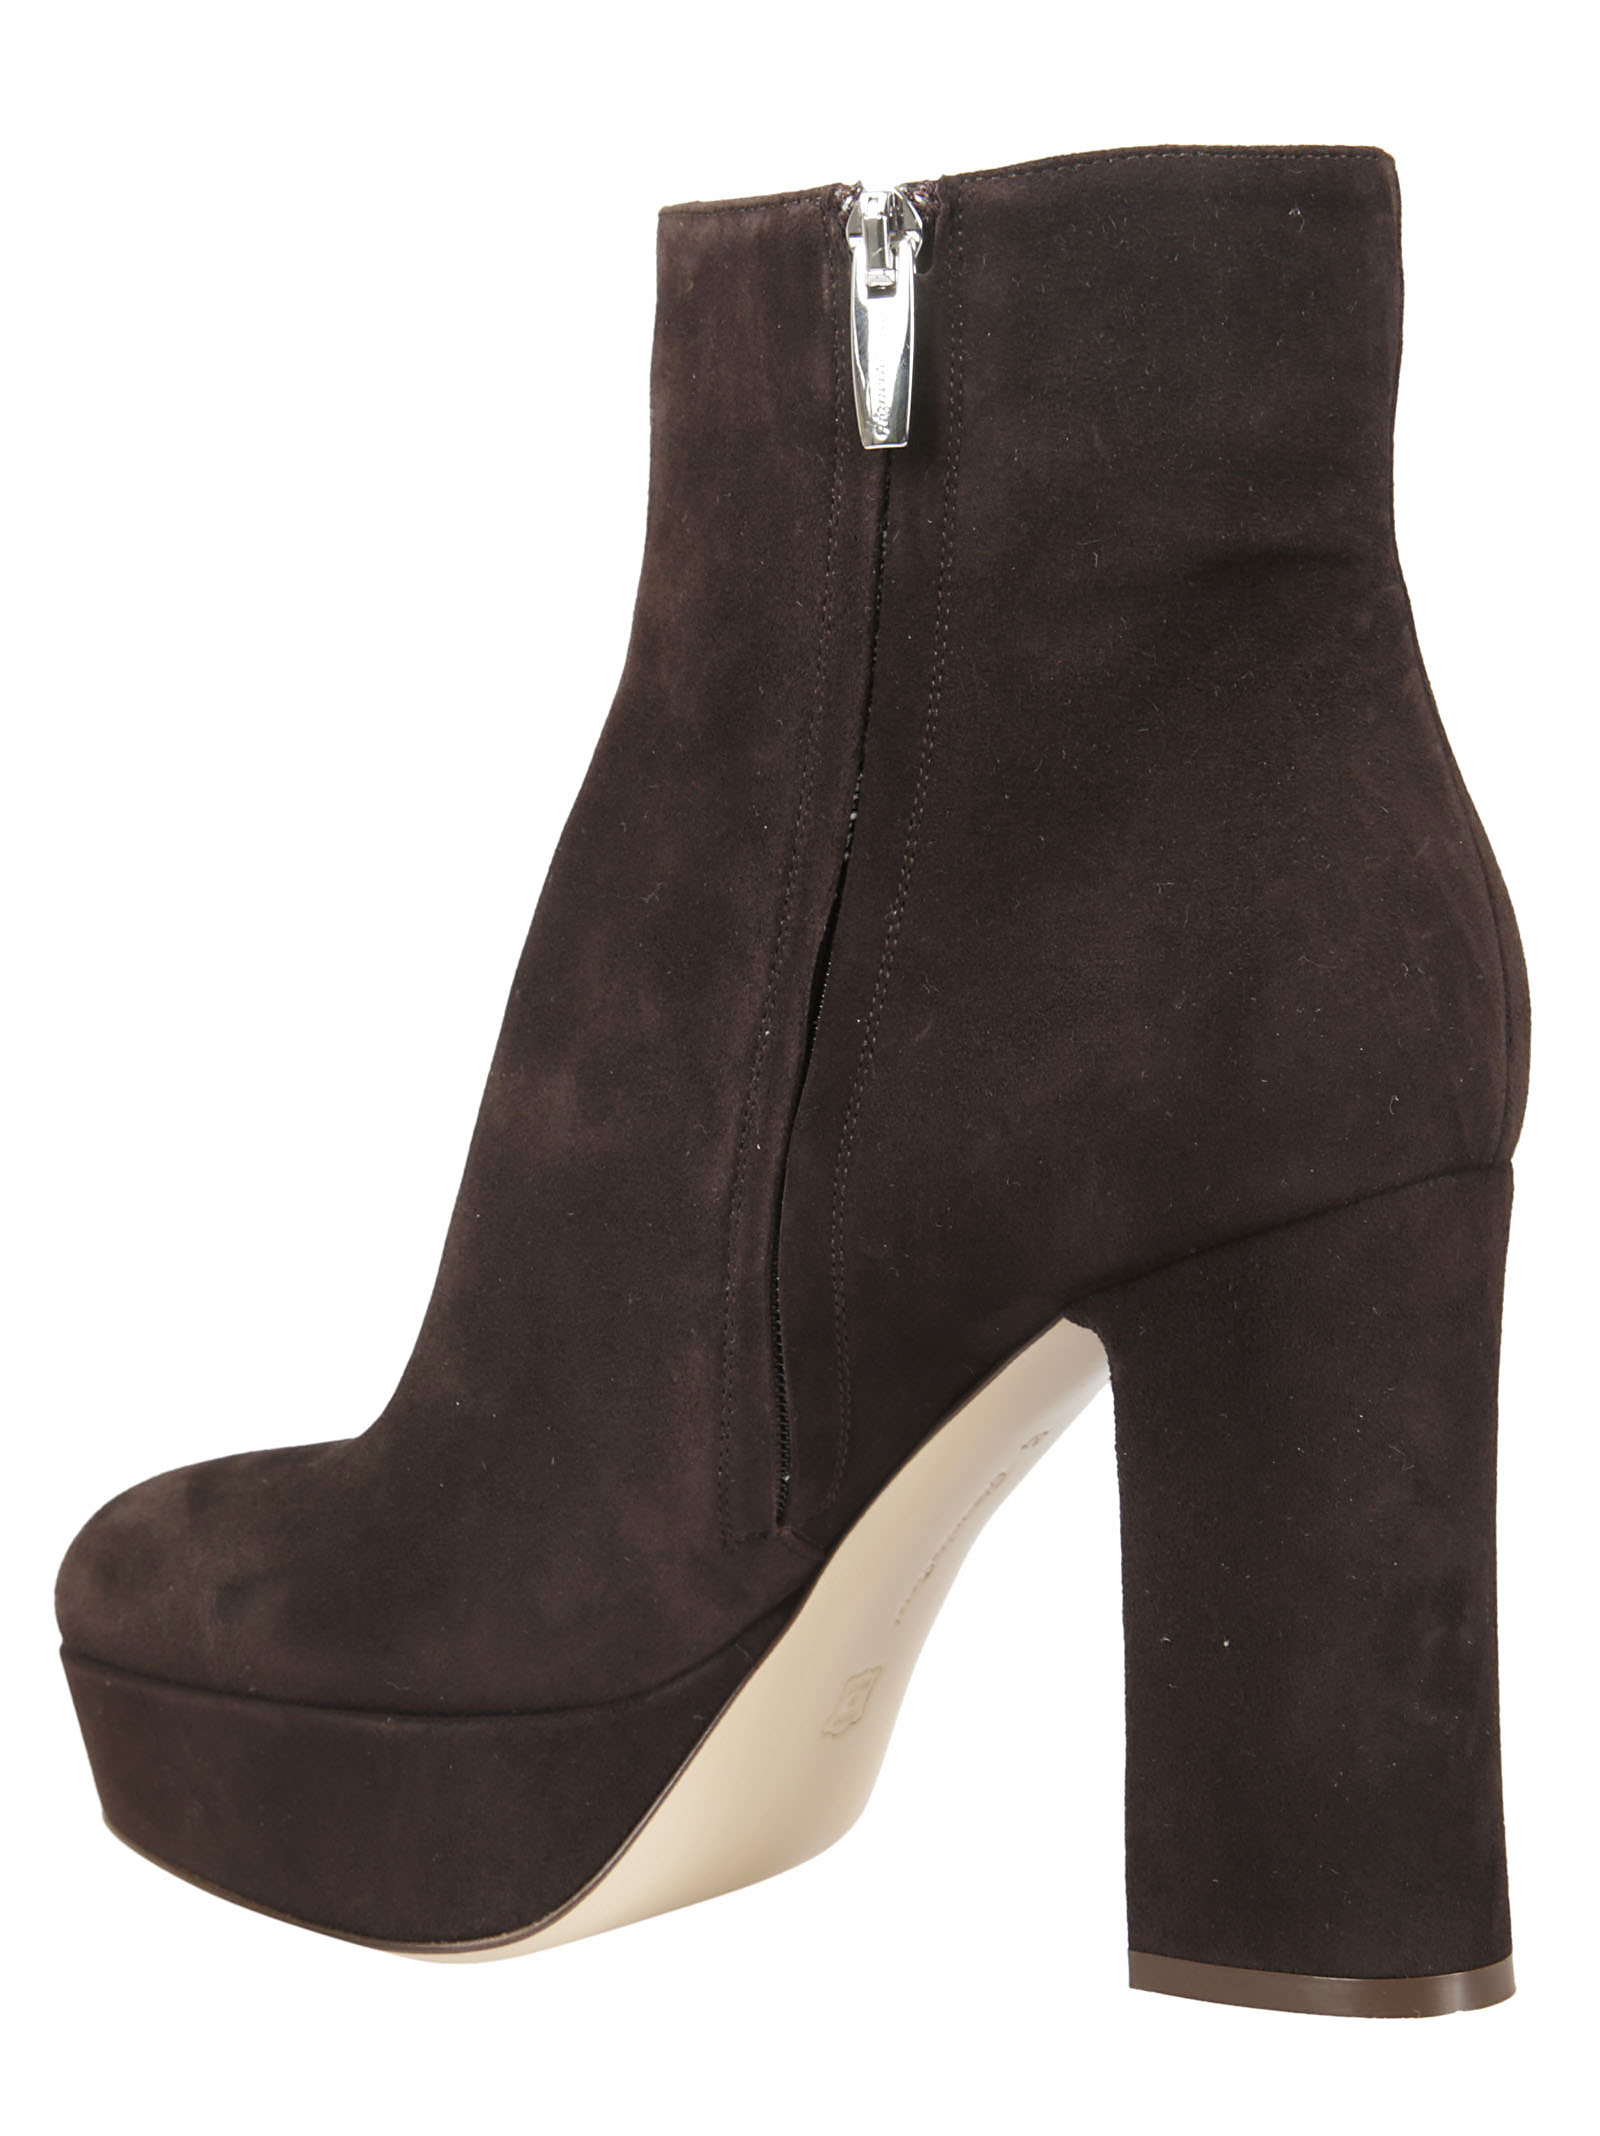 Gianvito Rossi ANKLE BOOT